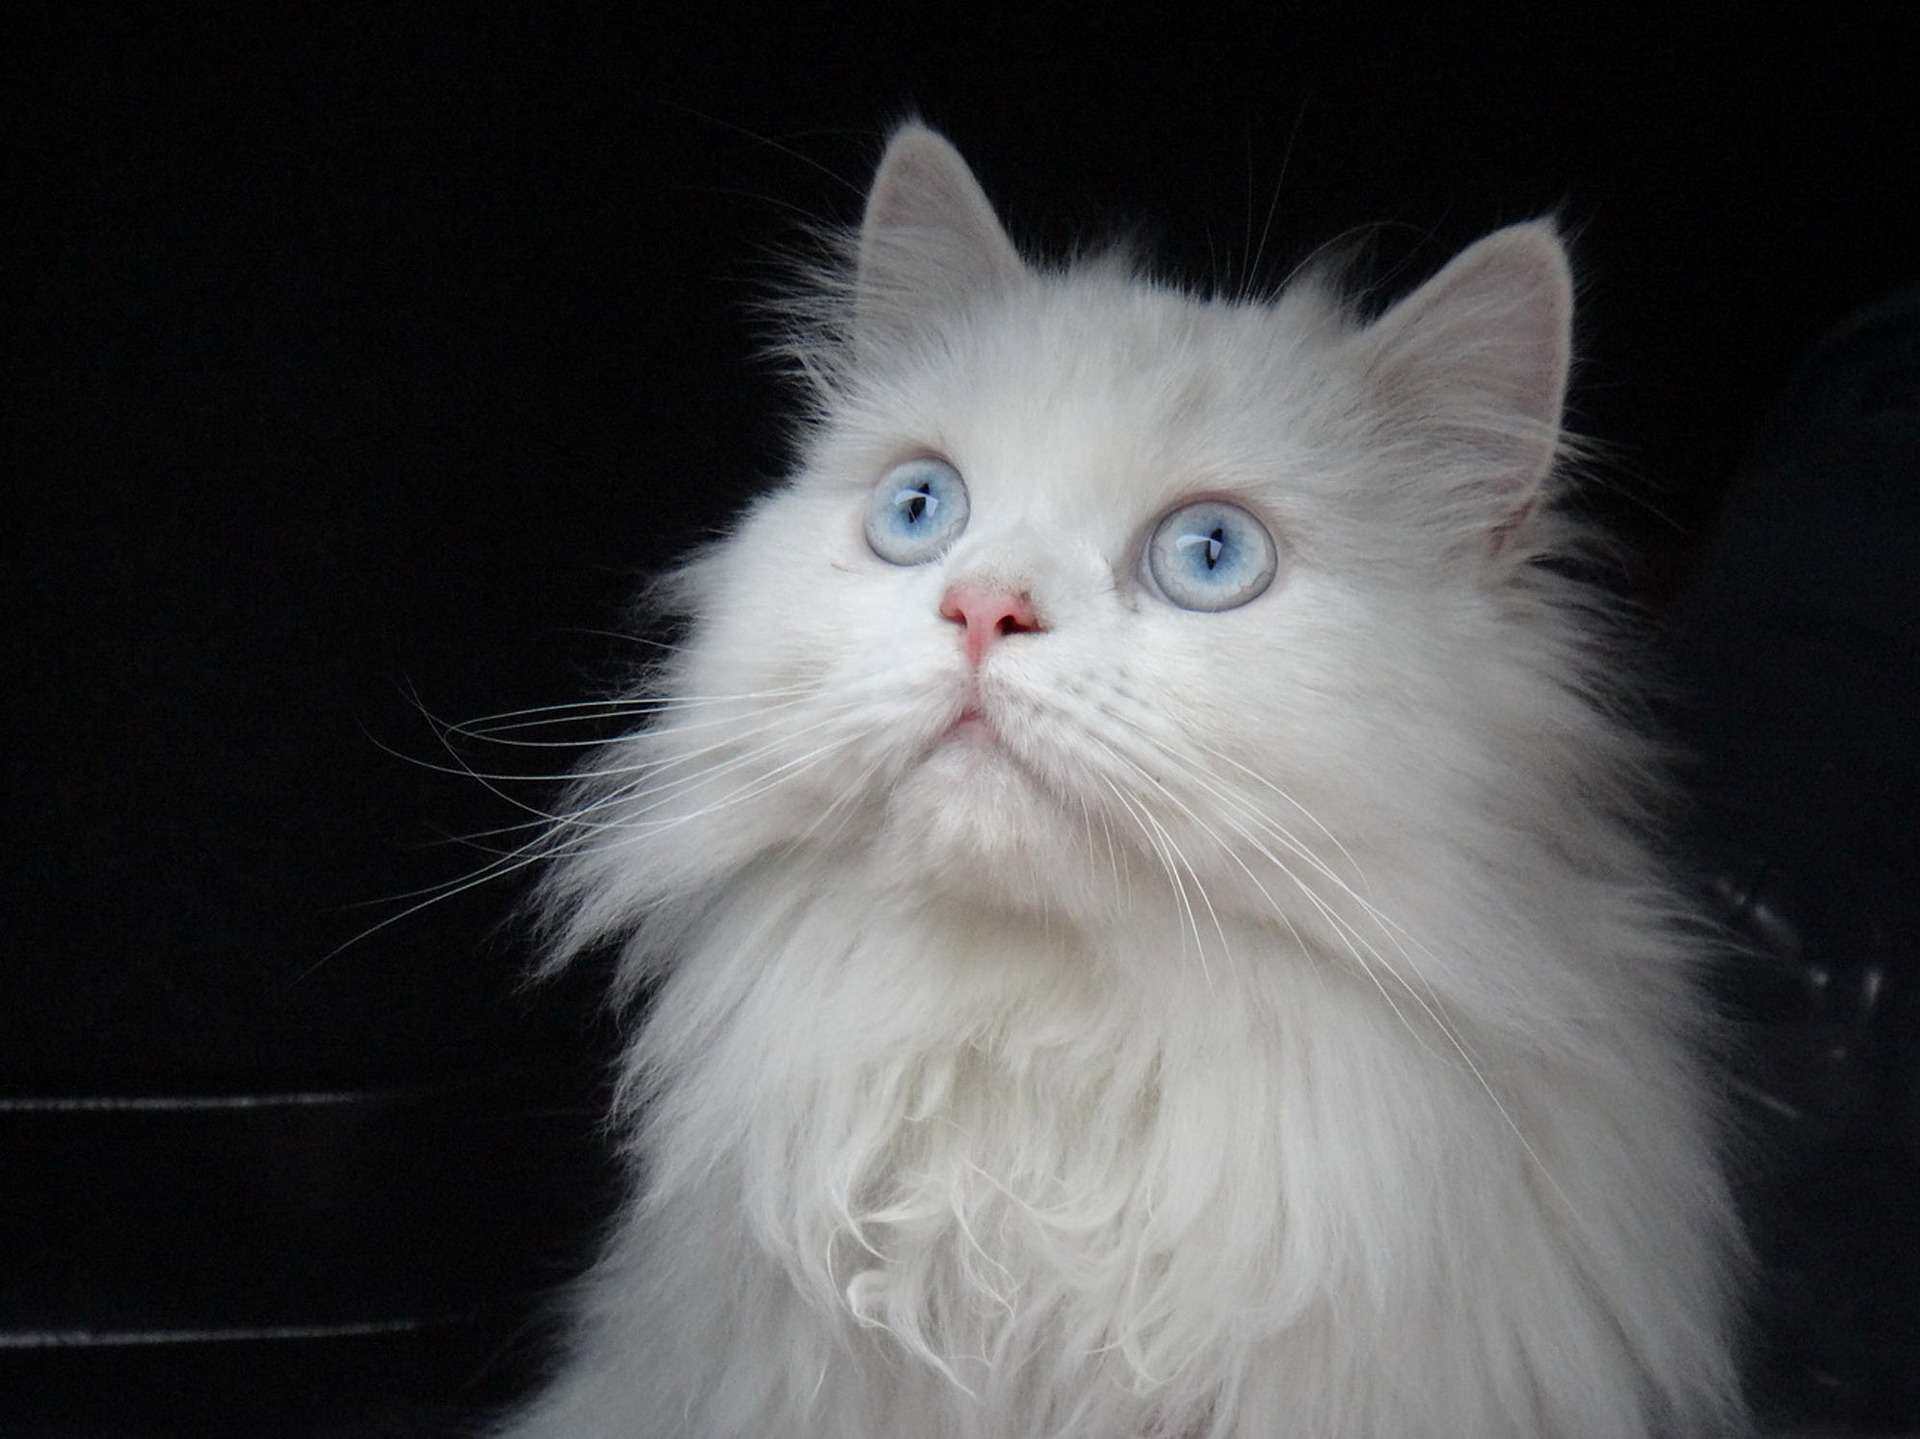 A white Persian cat looking up.